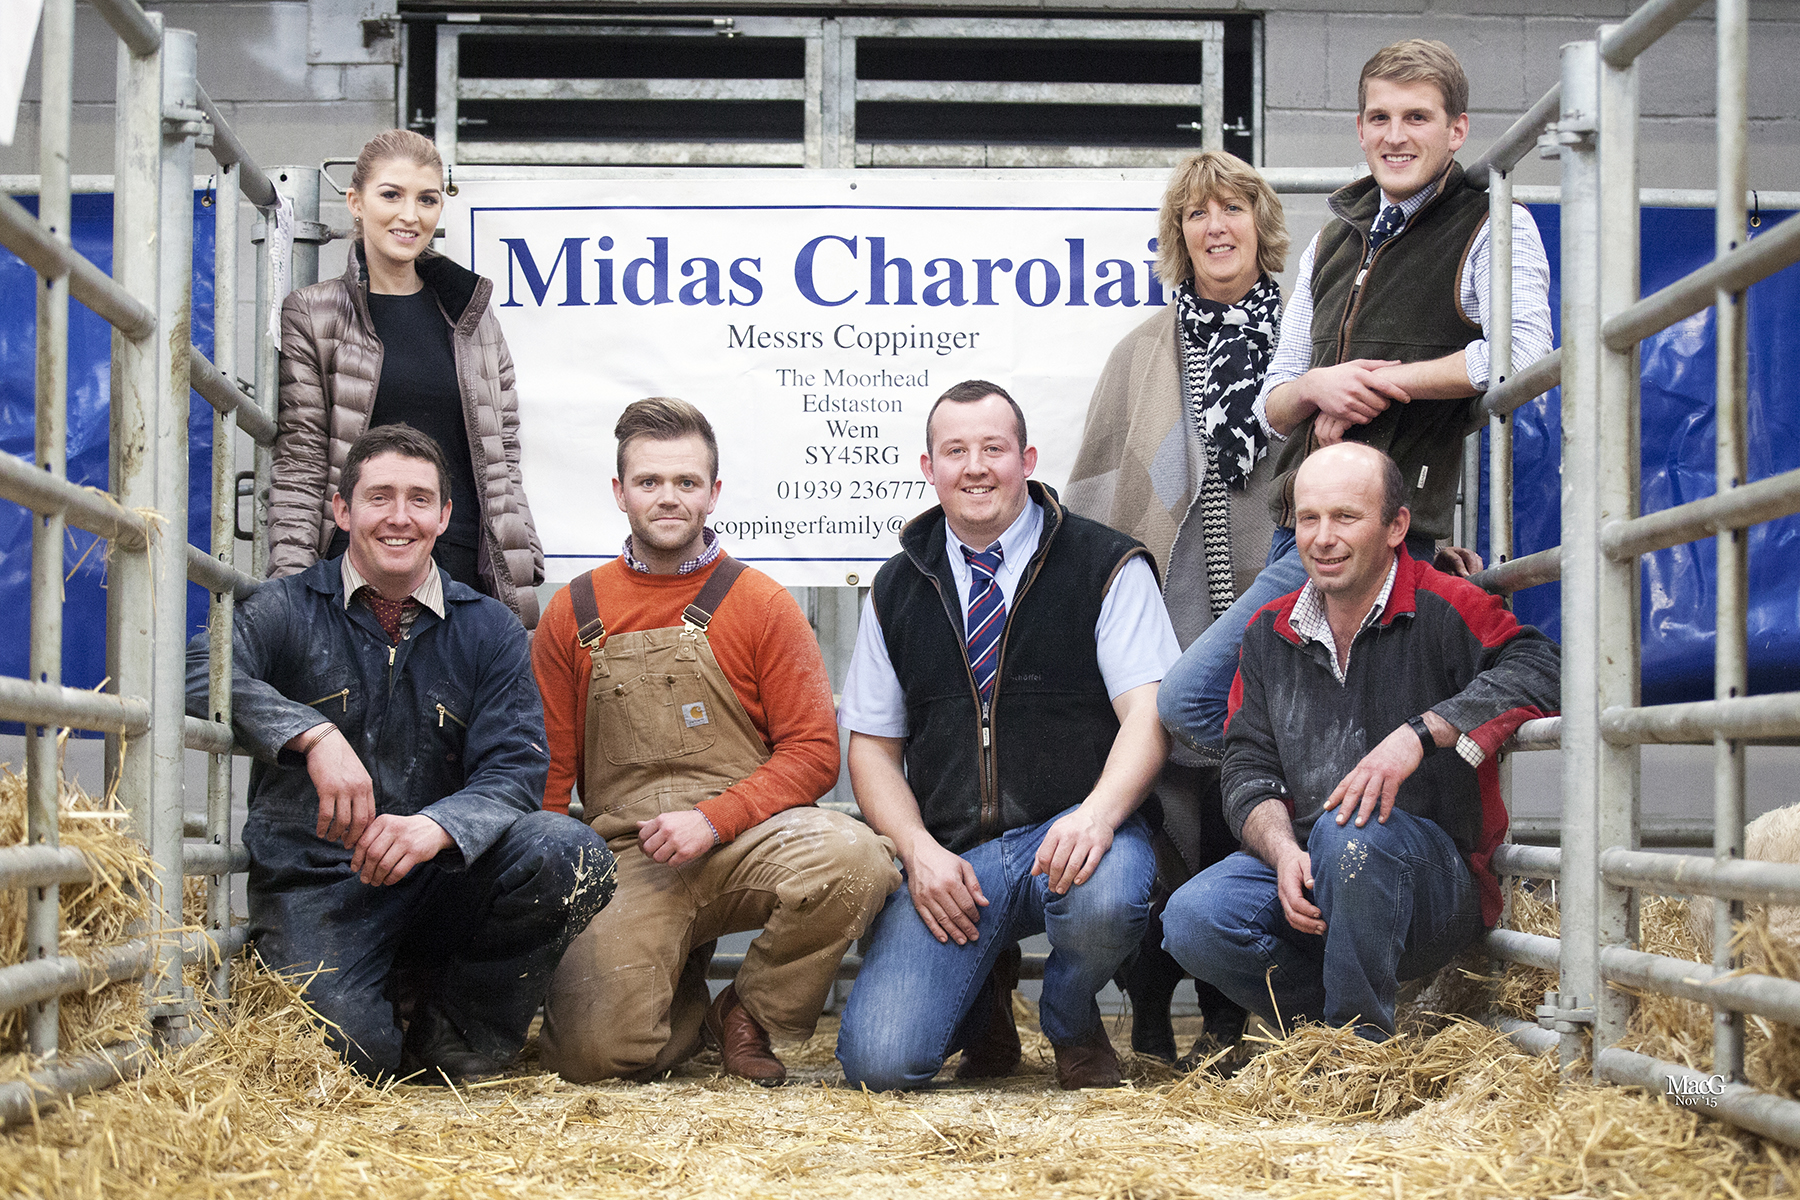 The Midas Team